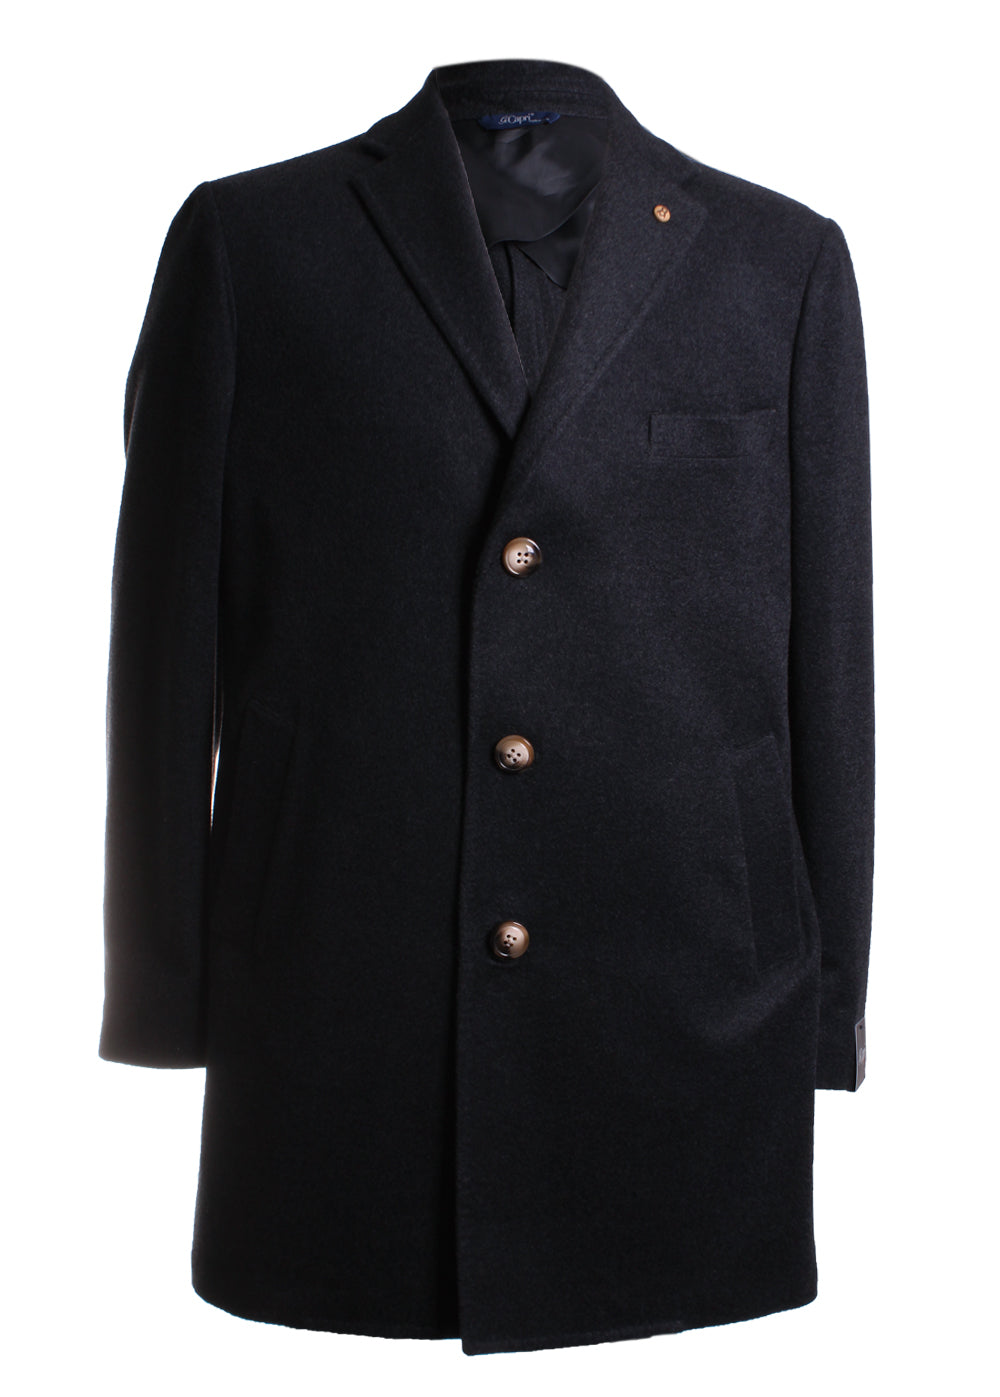 Gi Capri Overcoat in Black